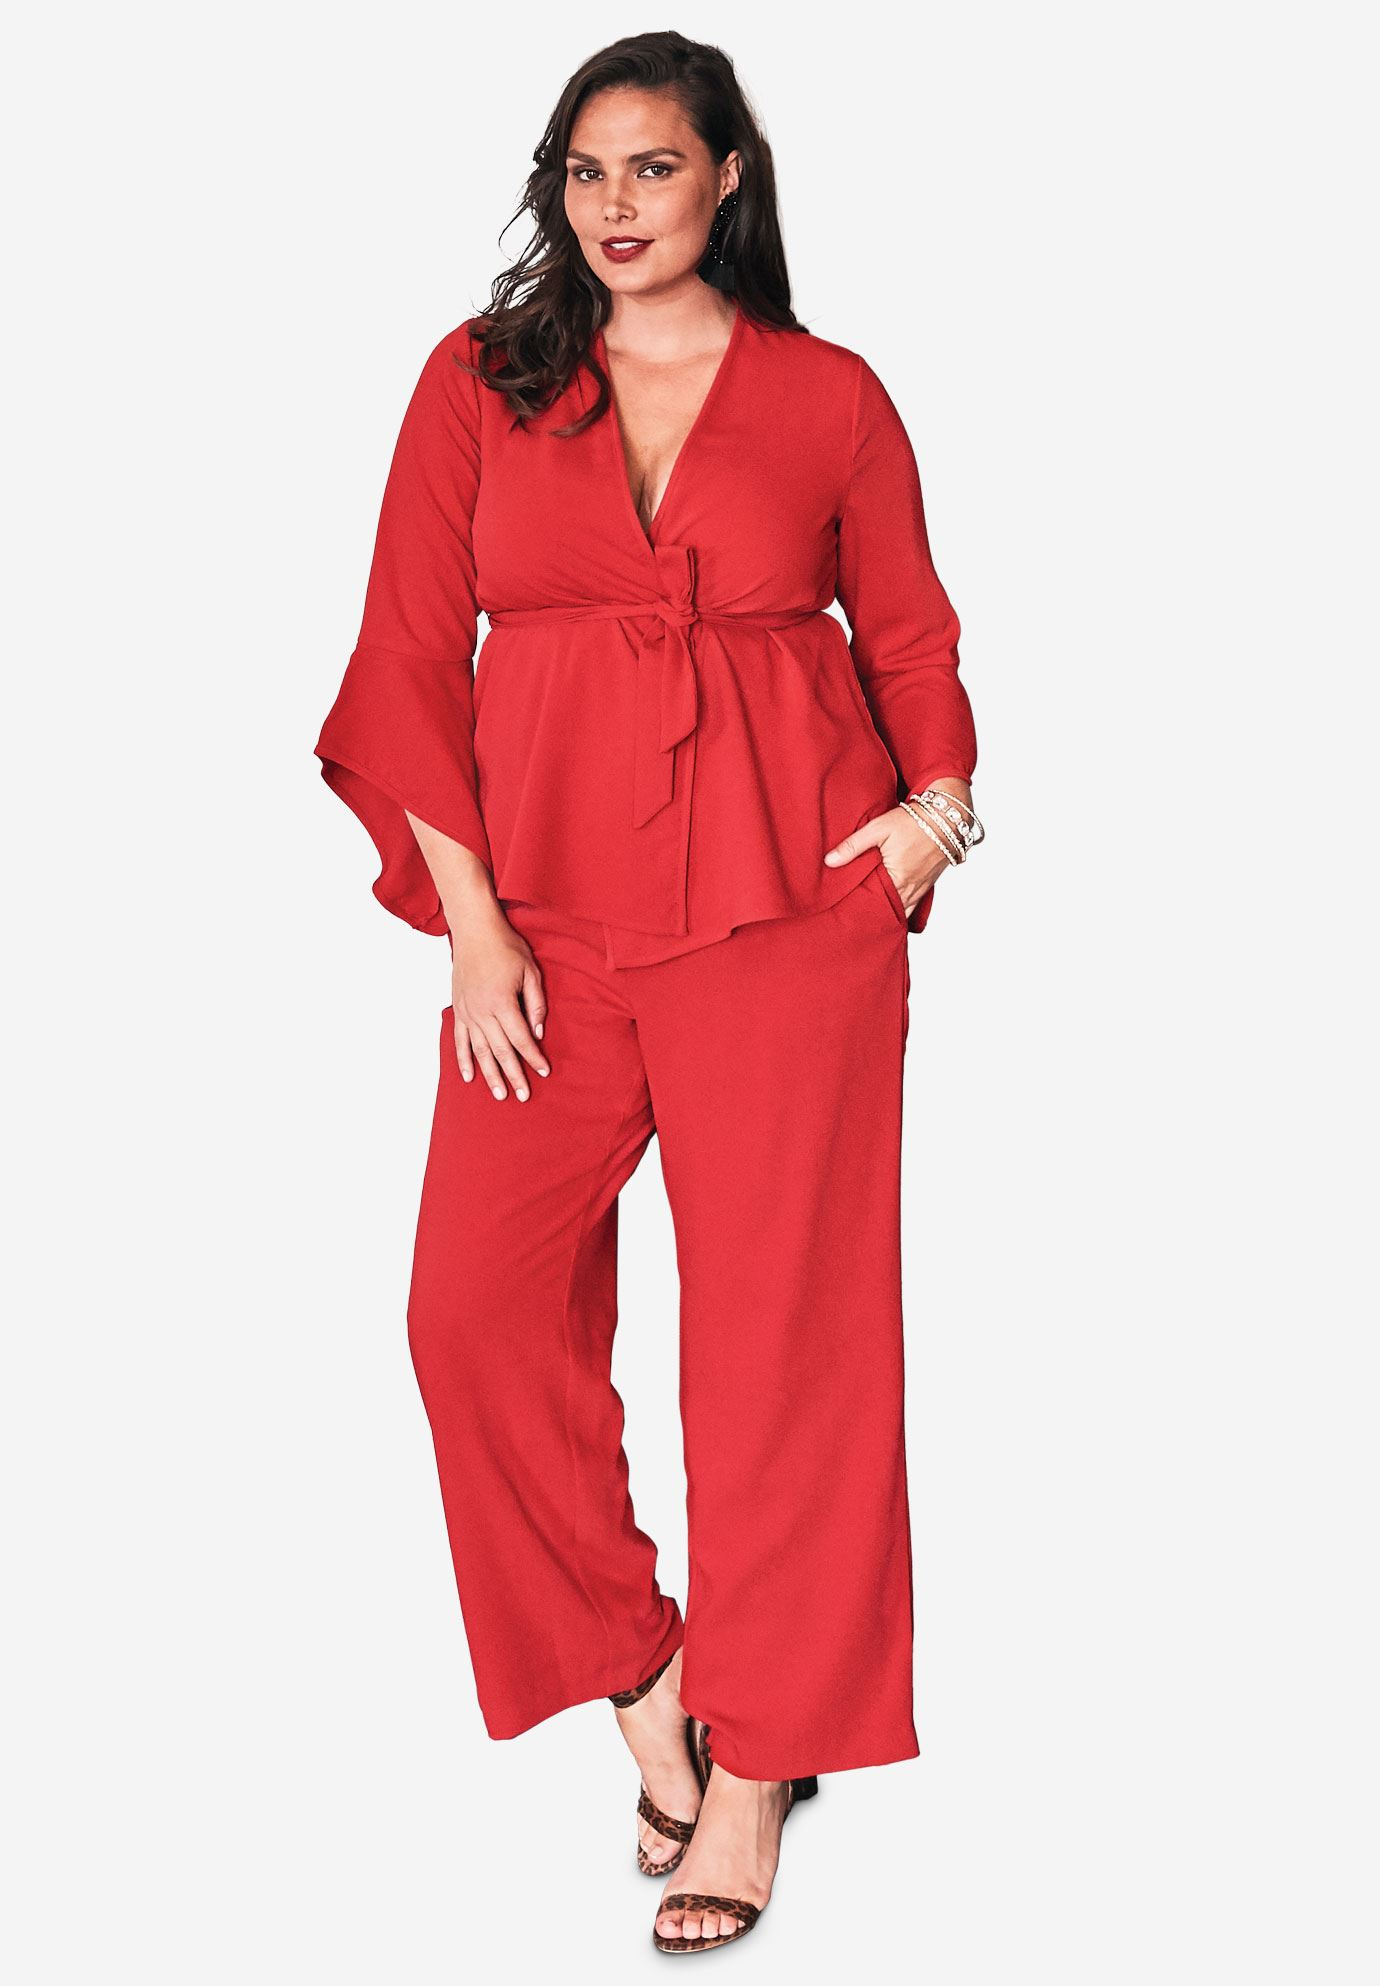 Pantsuit with Bell Sleeves,